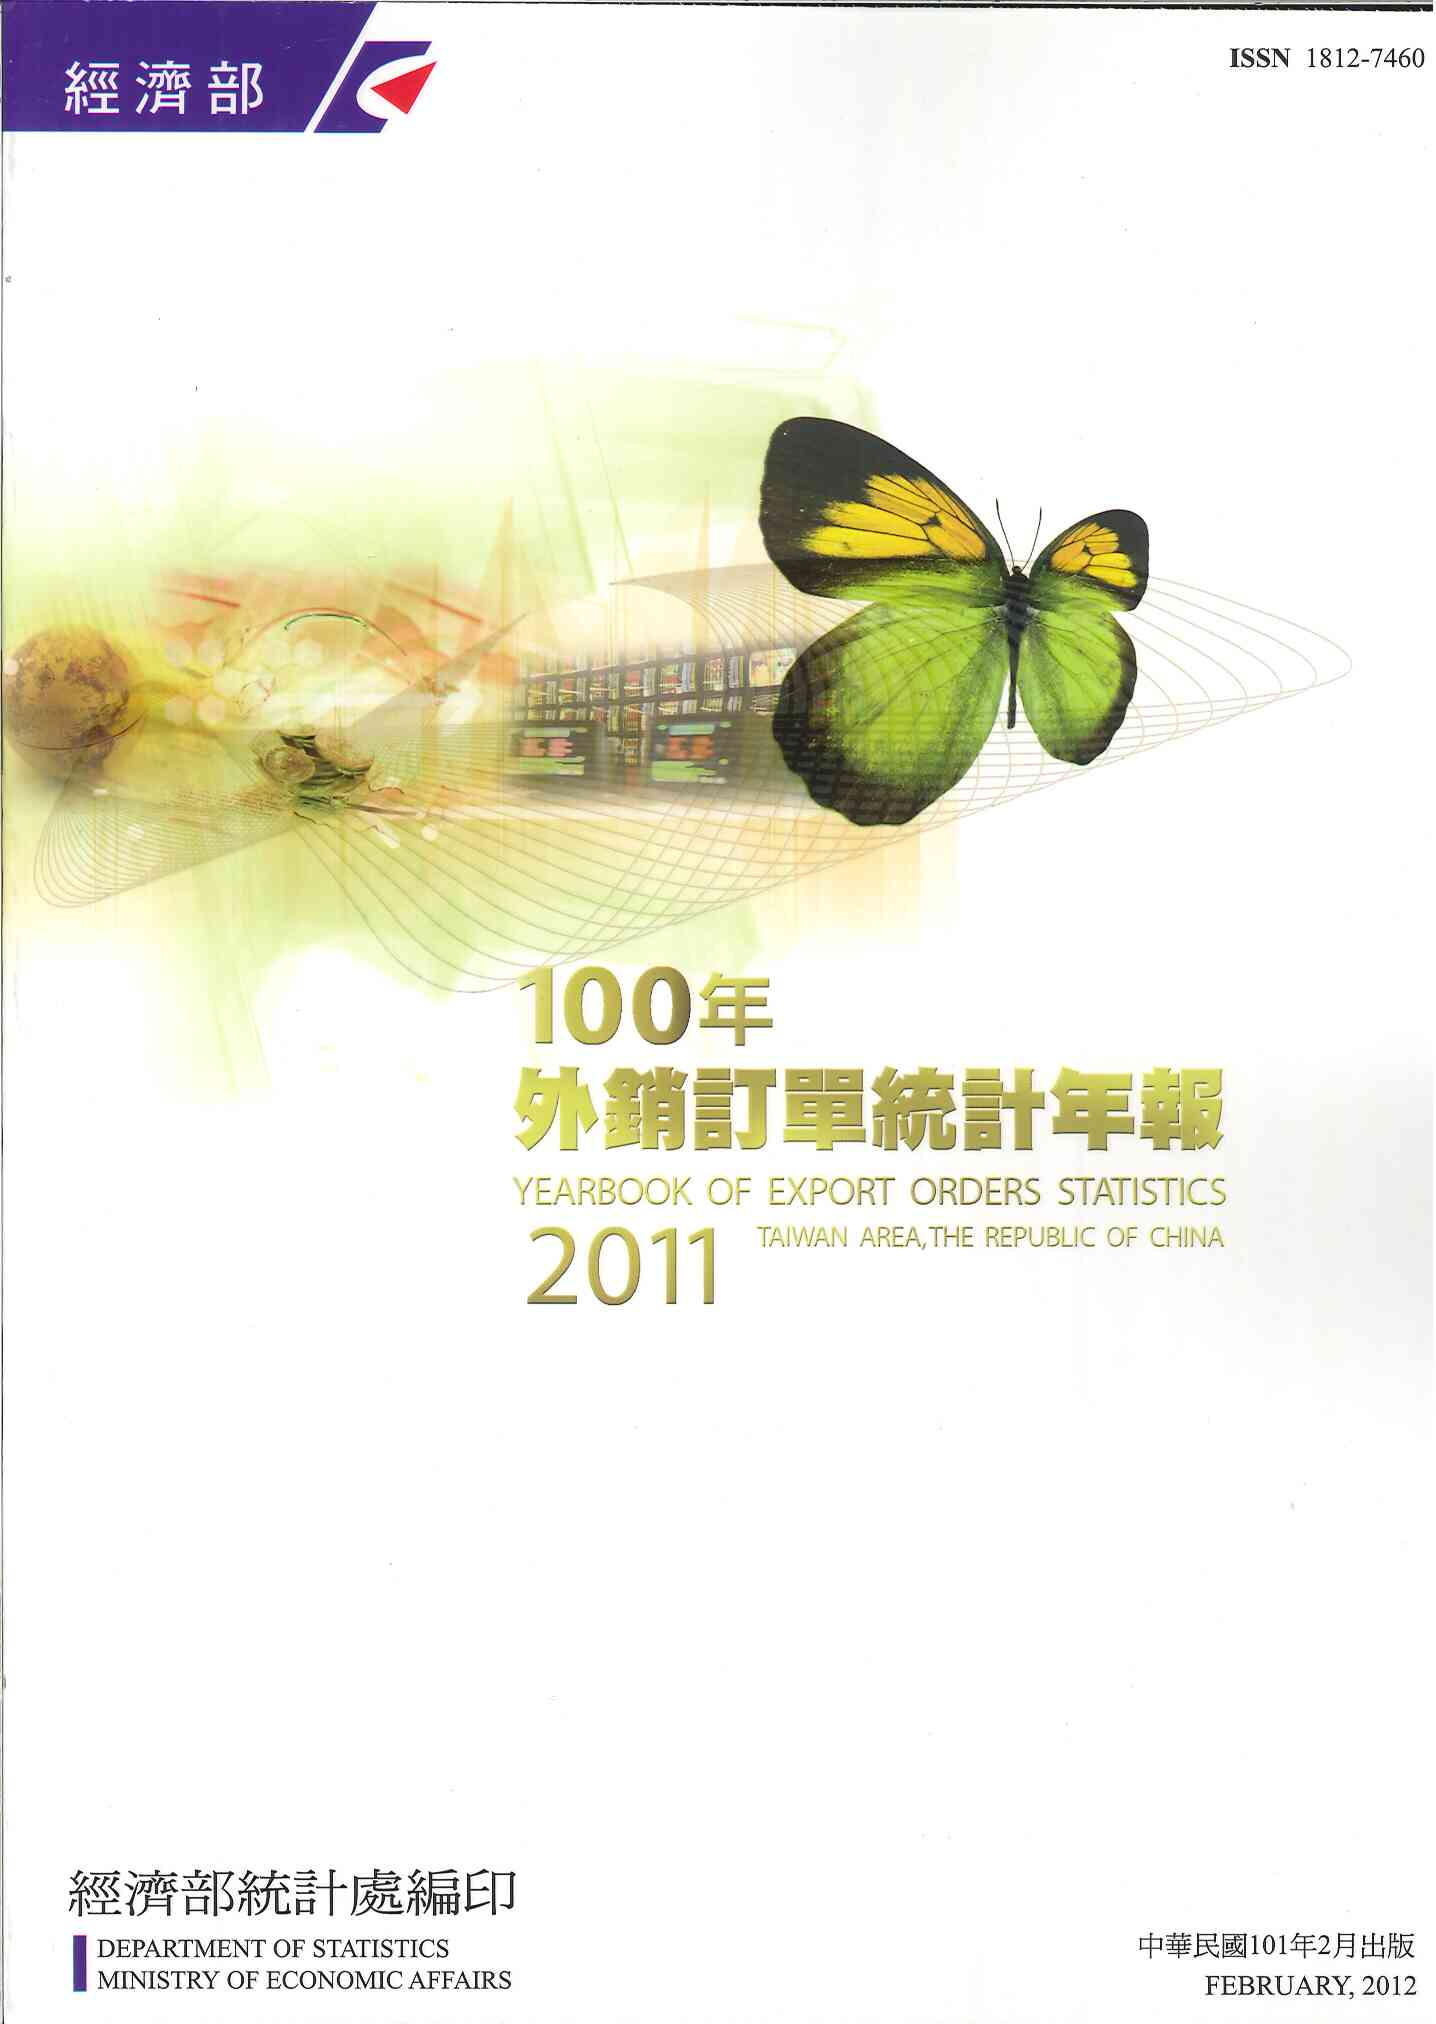 中華民國臺灣地區外銷訂單統計年刊=Yearbook of export orders statistics Taiwan area, The Republic of China